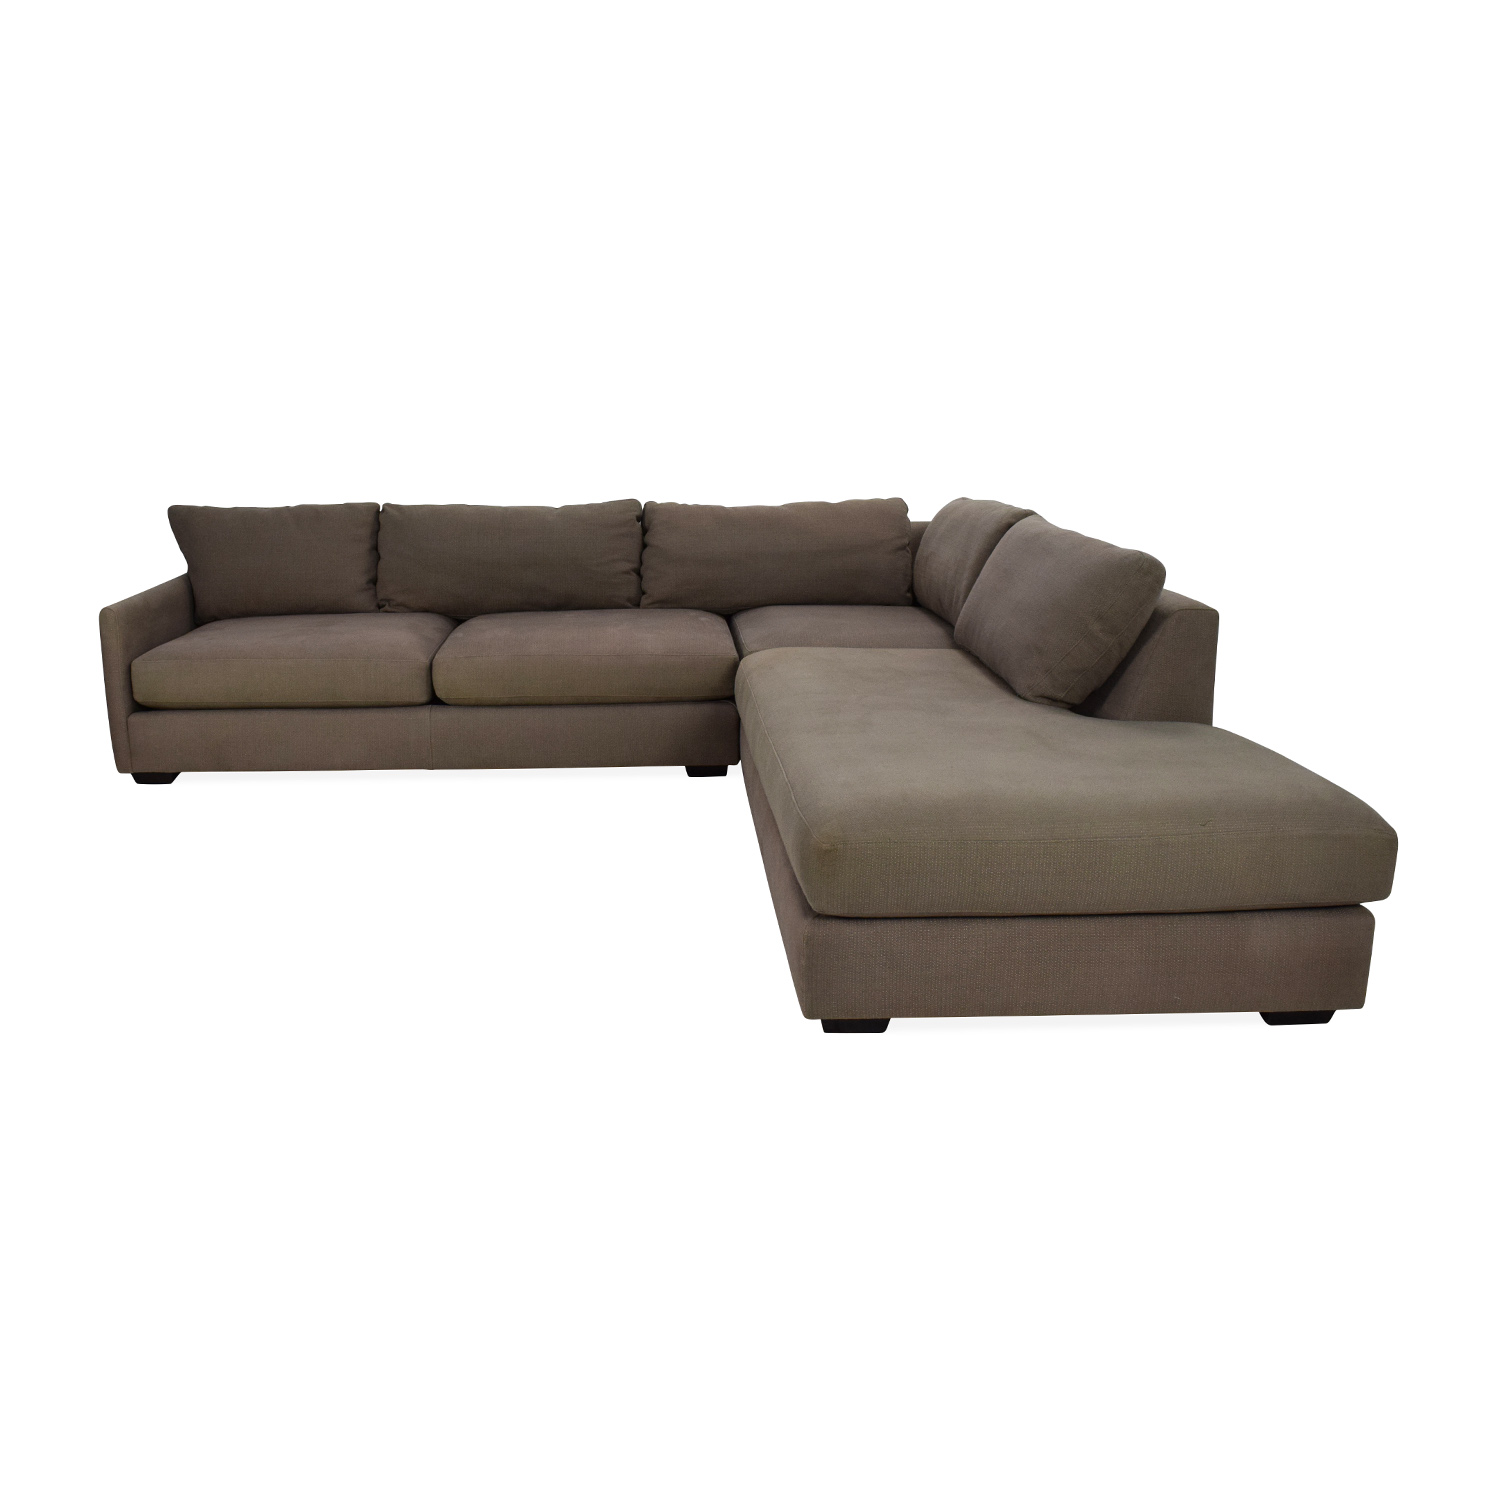 Crate and Barrel Crate & Barrel Domino Sectional Sofa coupon